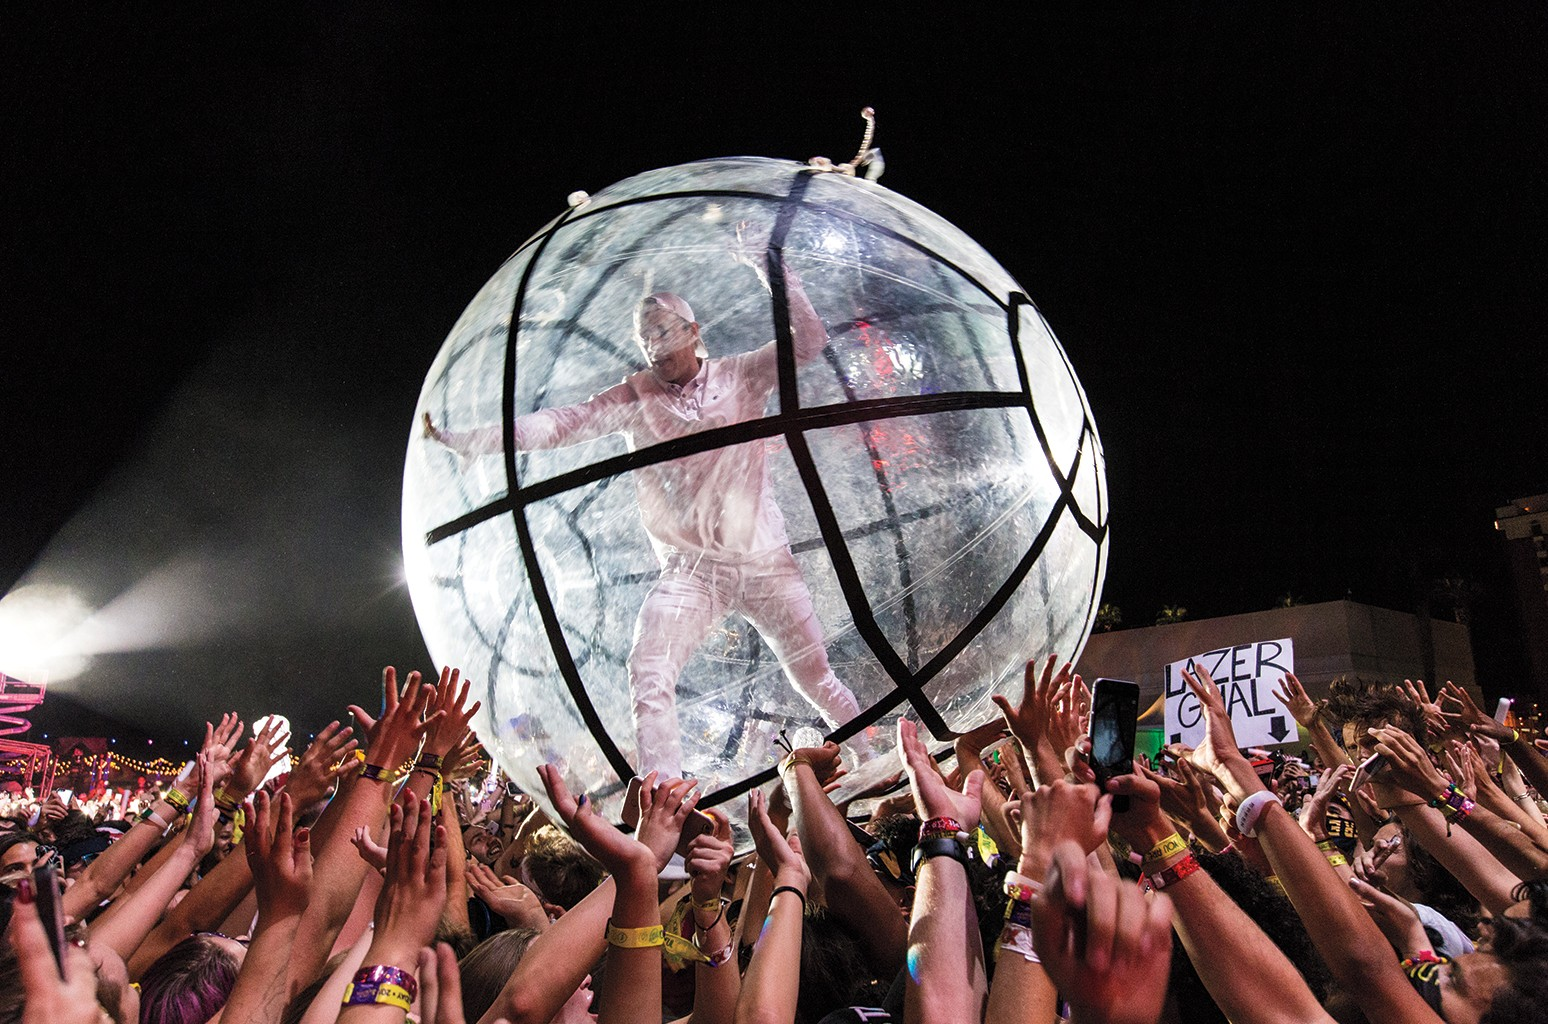 Diplo of Major Lazer crowd surfs/performs during the 2016 Life is Beautiful festival on Sept. 25, 2016 in Las Vegas.